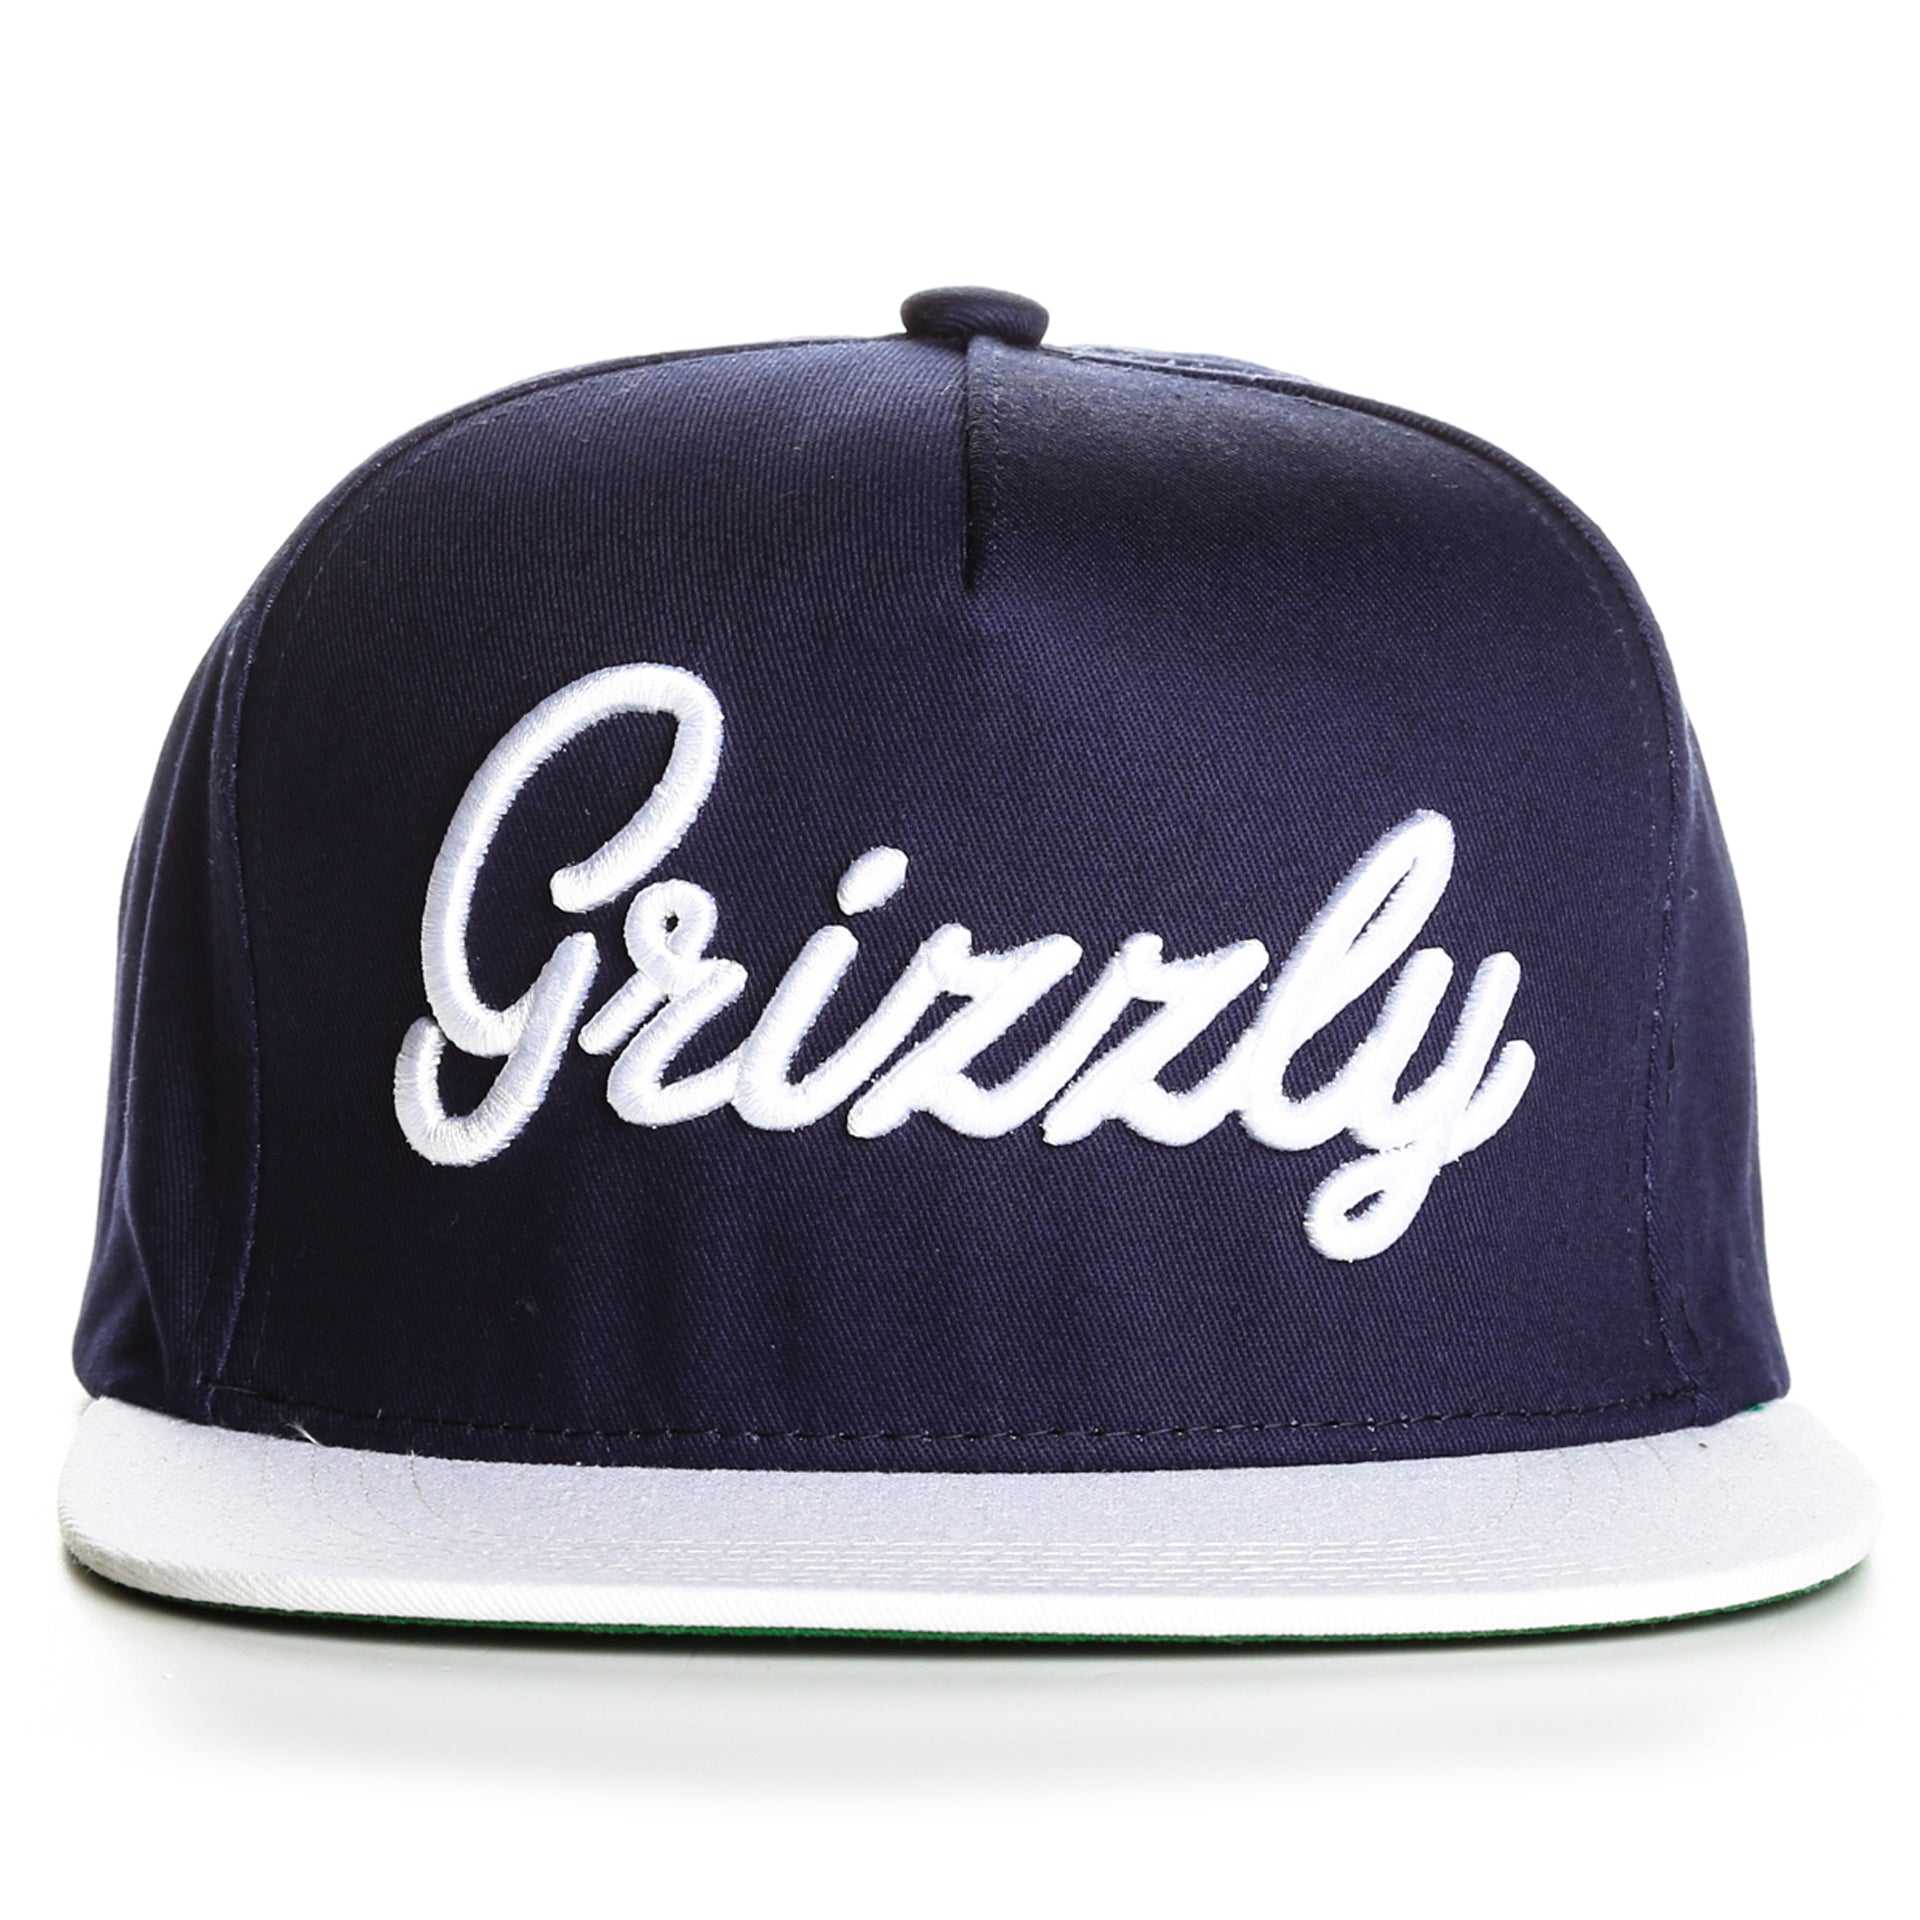 56f02c40981 Grizzly SubAlpine Snapback - Navy. Grizzly Griptape